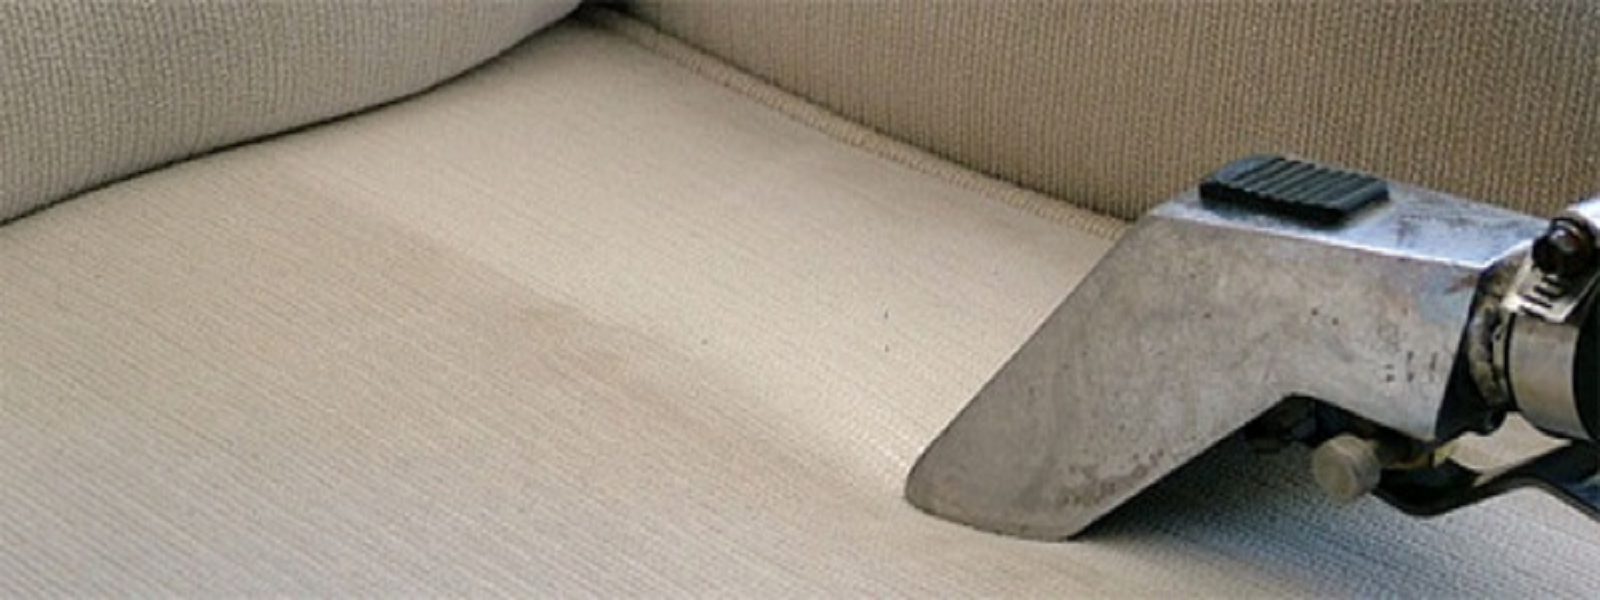 upholstery cleaning ct